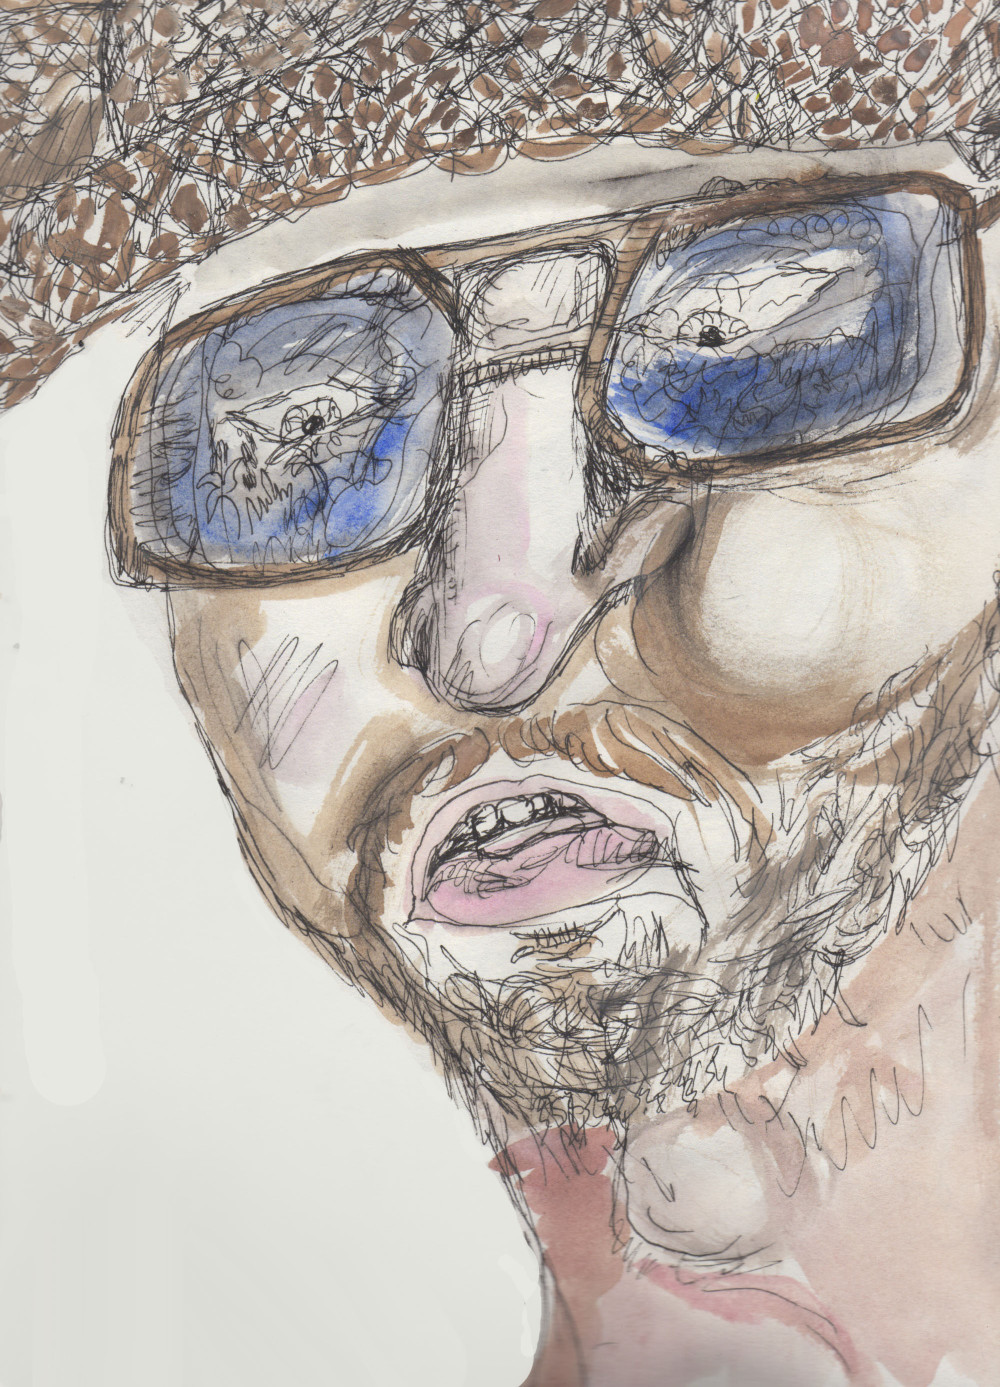 Chris Davis in One-Man Apocalypse Now as sketched by Chuck Schultz.